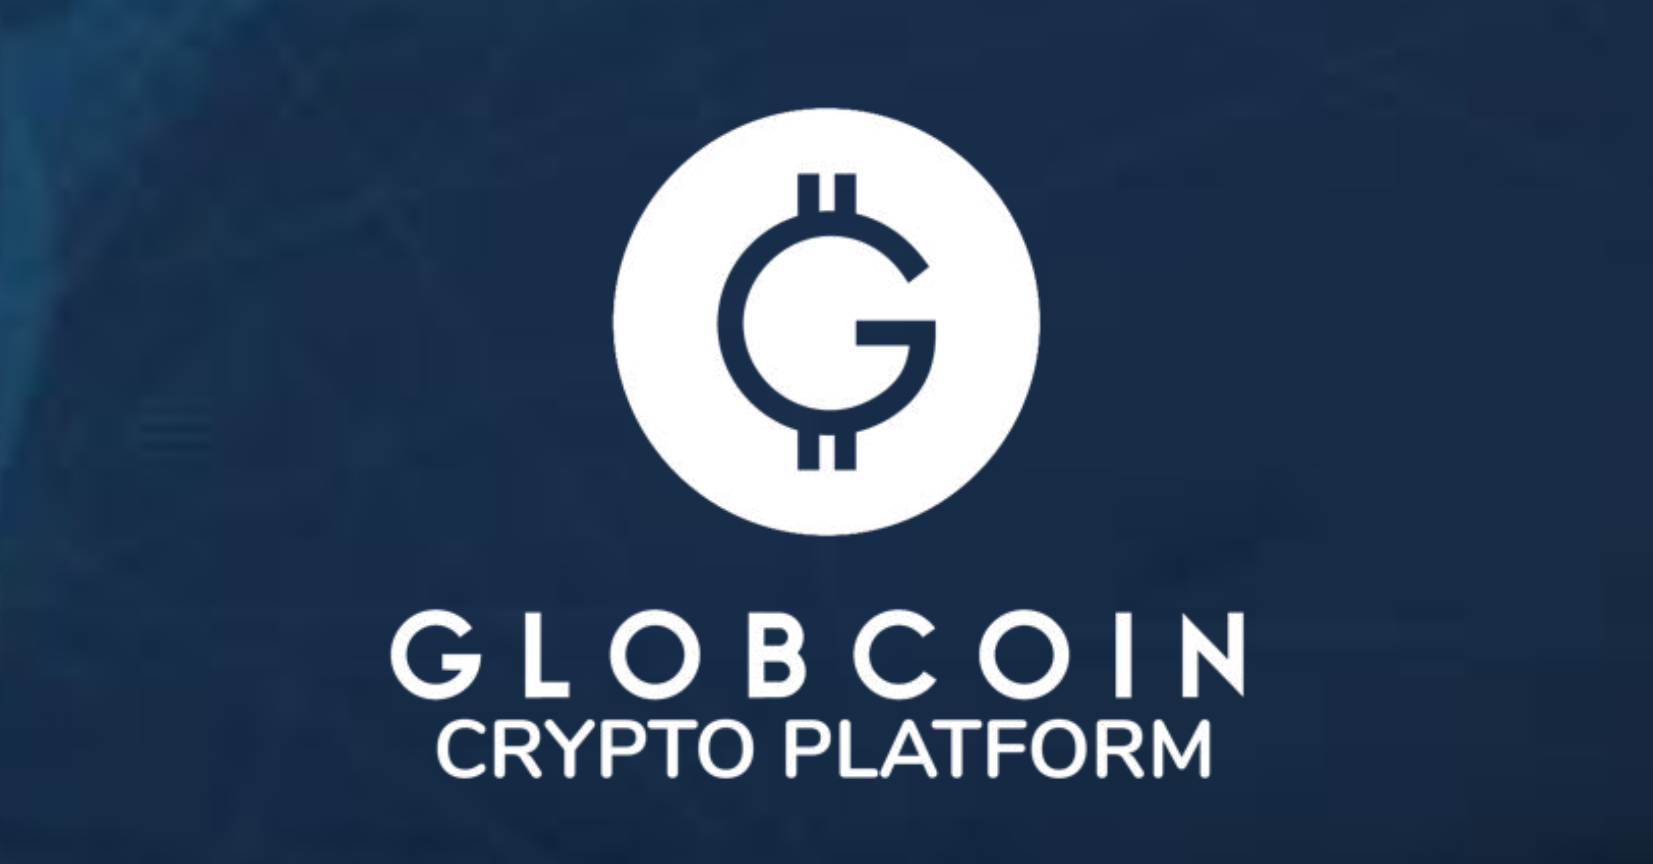 globcoinico1.png